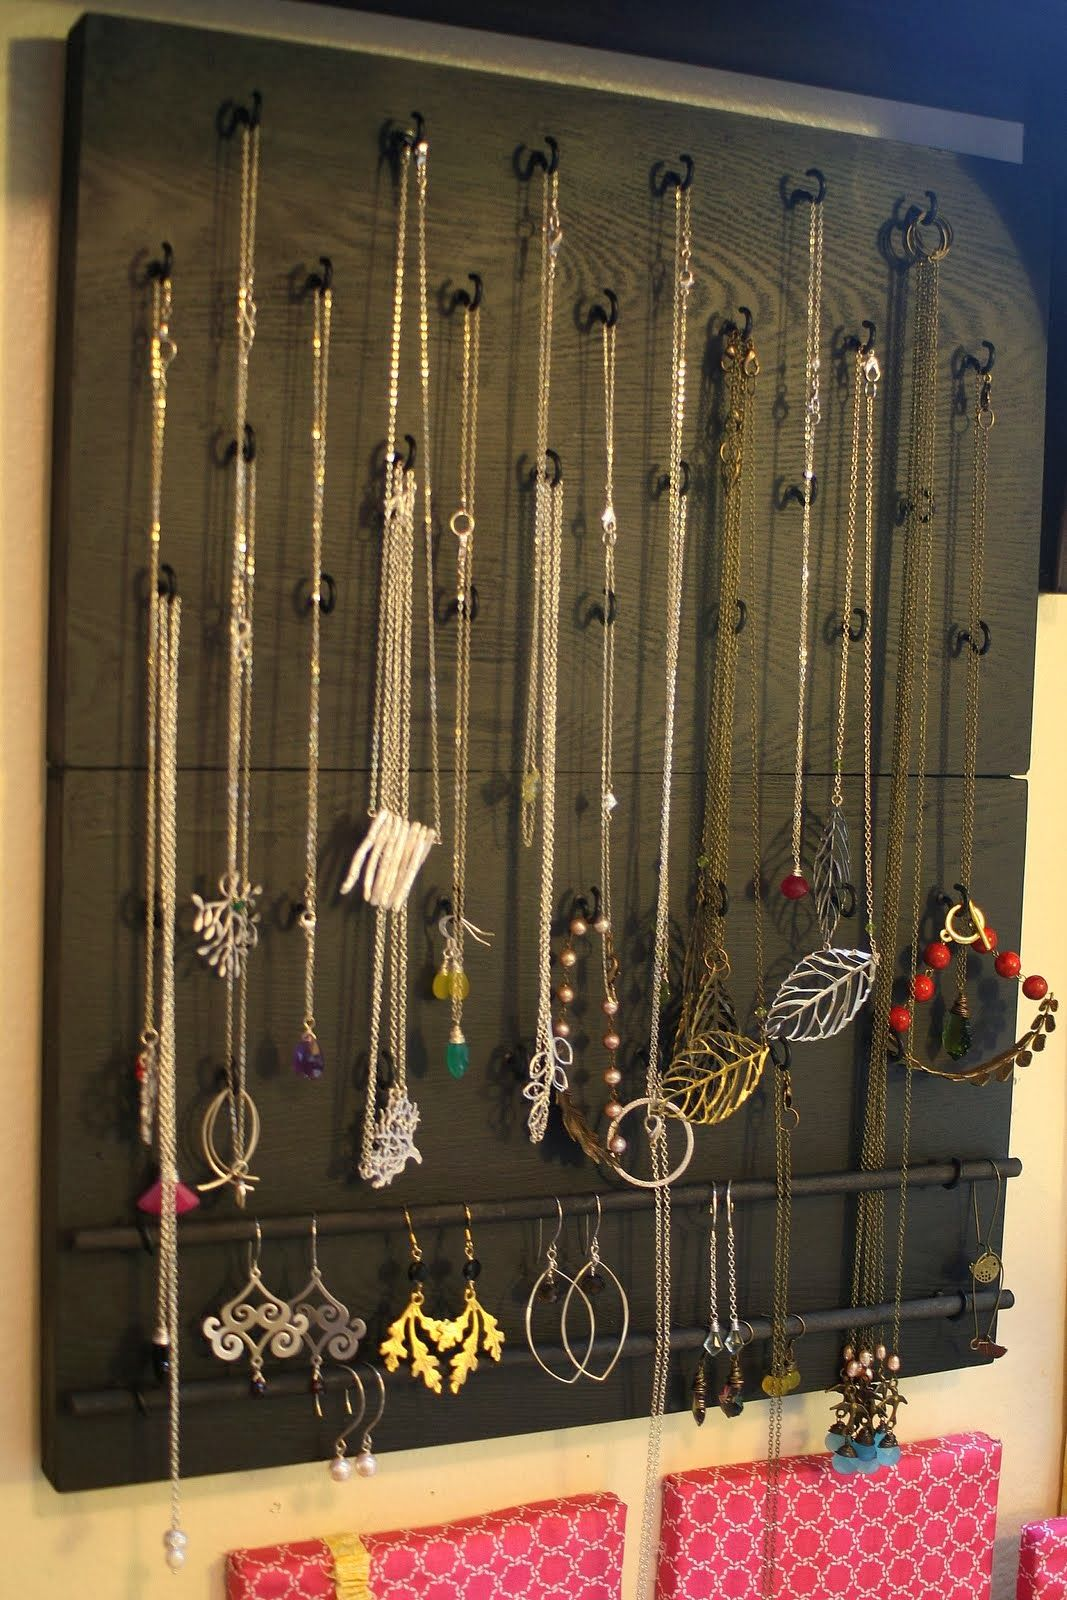 On My Side of the Room Wall Hanging Jewelry Organizers Sale Wish